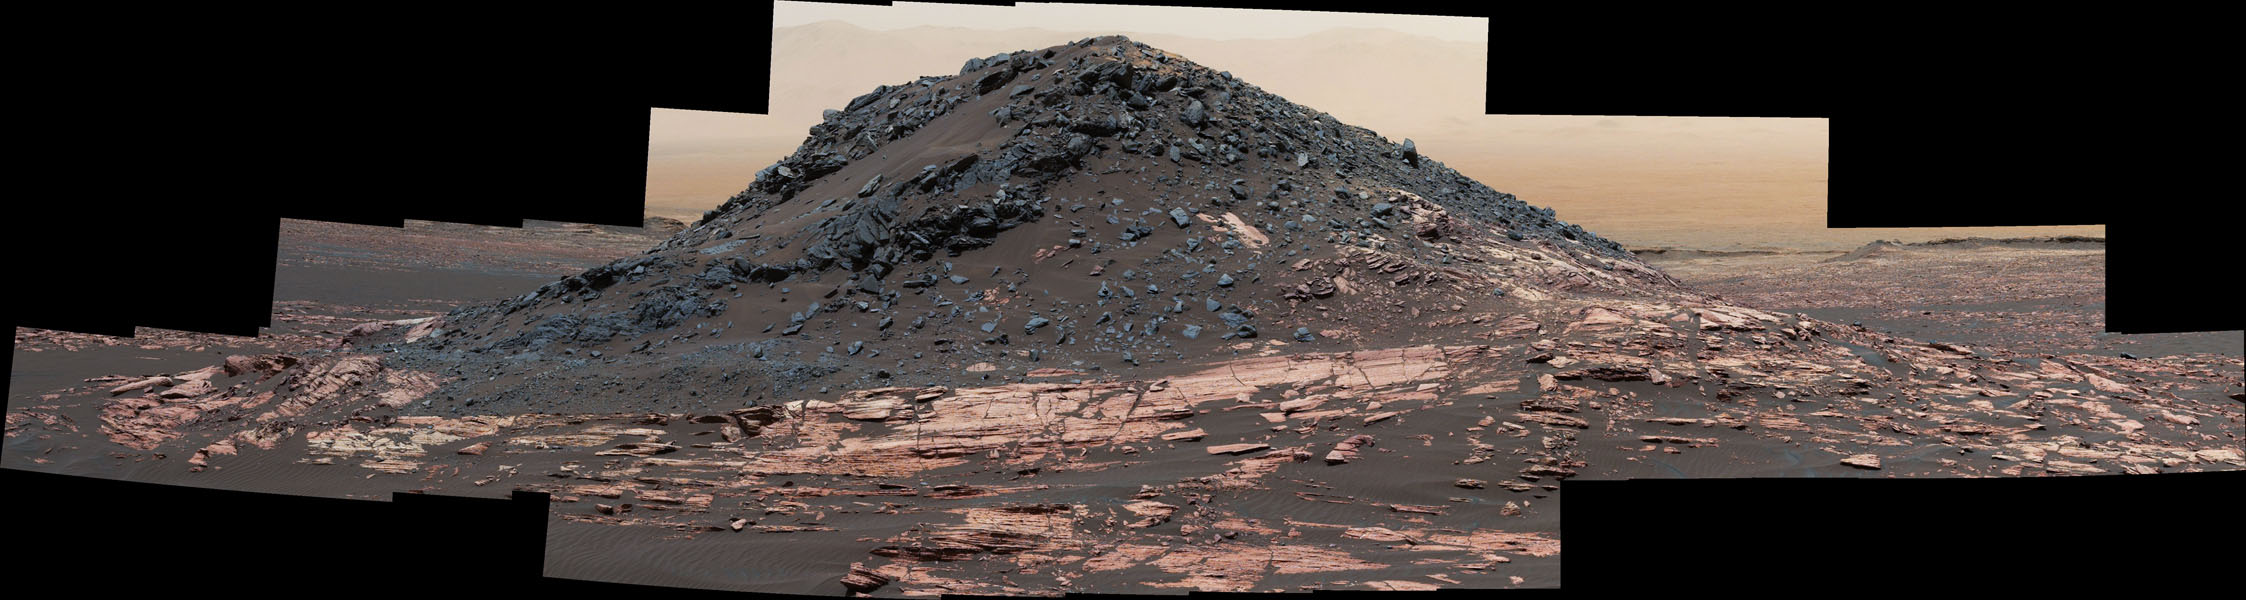 This dark mound, called 'Ireson Hill,' rises about 16 feet (5 meters) above redder layered outcrop material of the Murray formation on lower Mount Sharp, Mars, near a location where NASA's Curiosity rover examined a linear sand dune in February 2017.